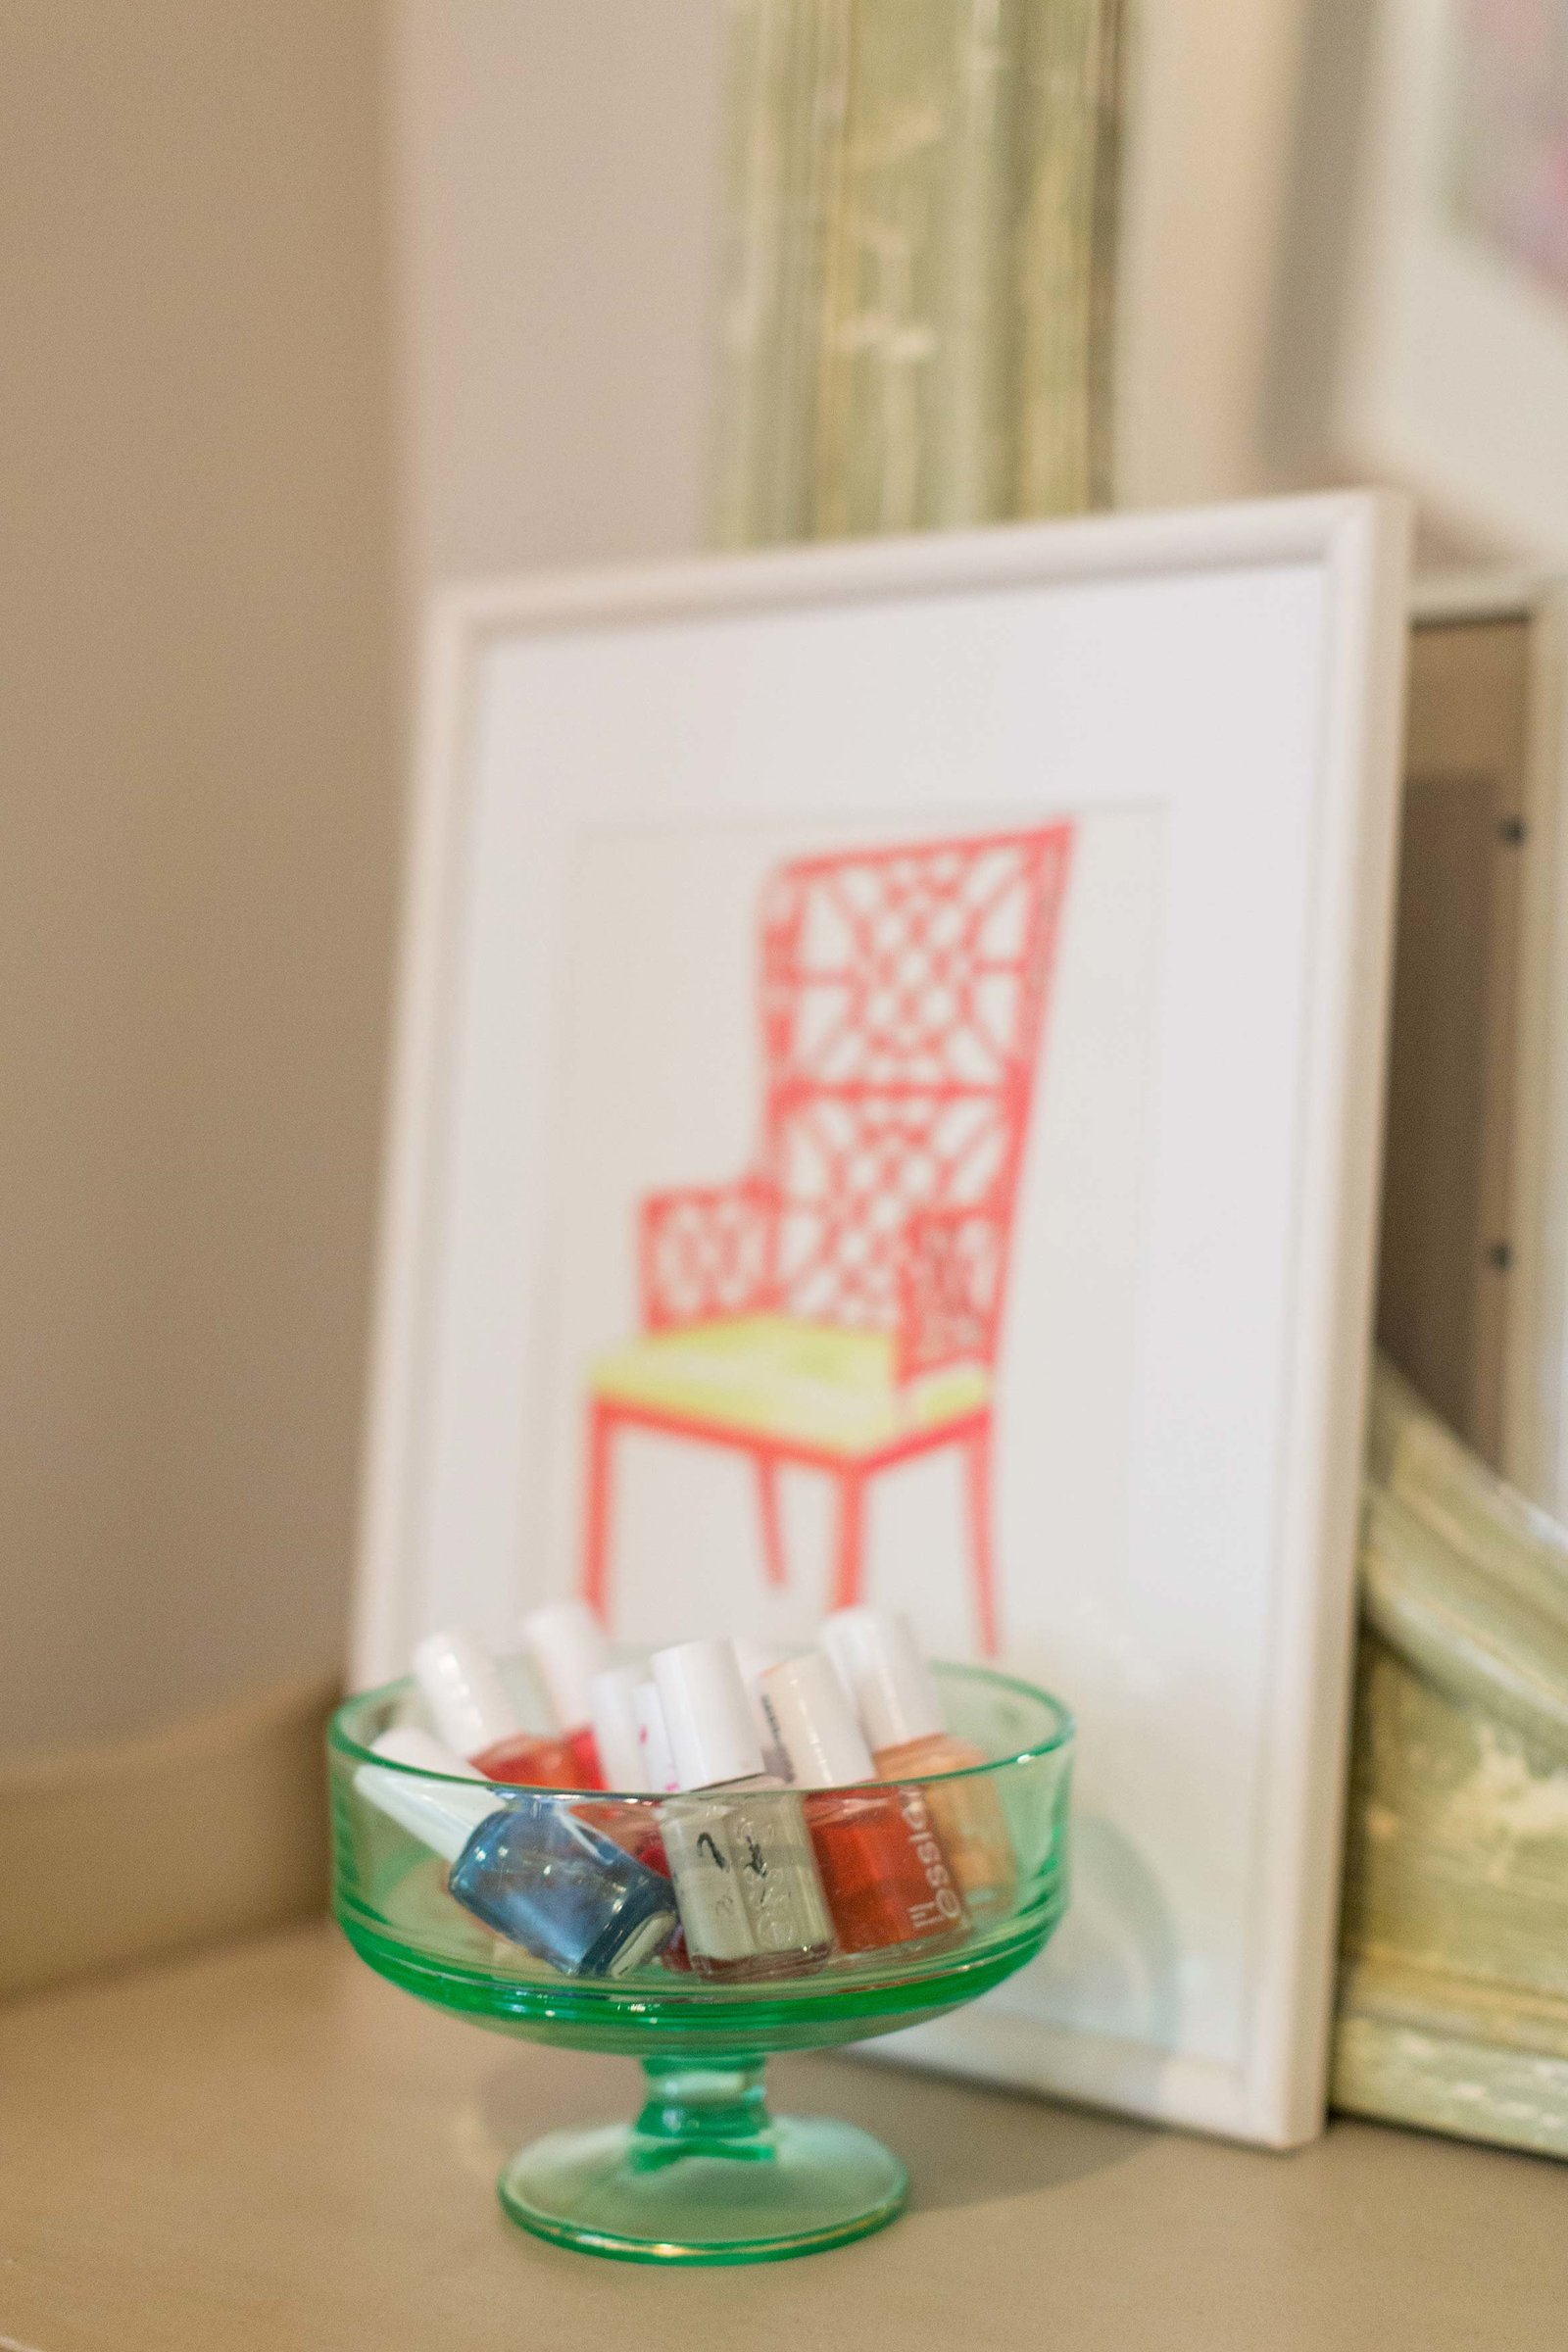 A glass dish with nail polish and a framed print of an orange chair.